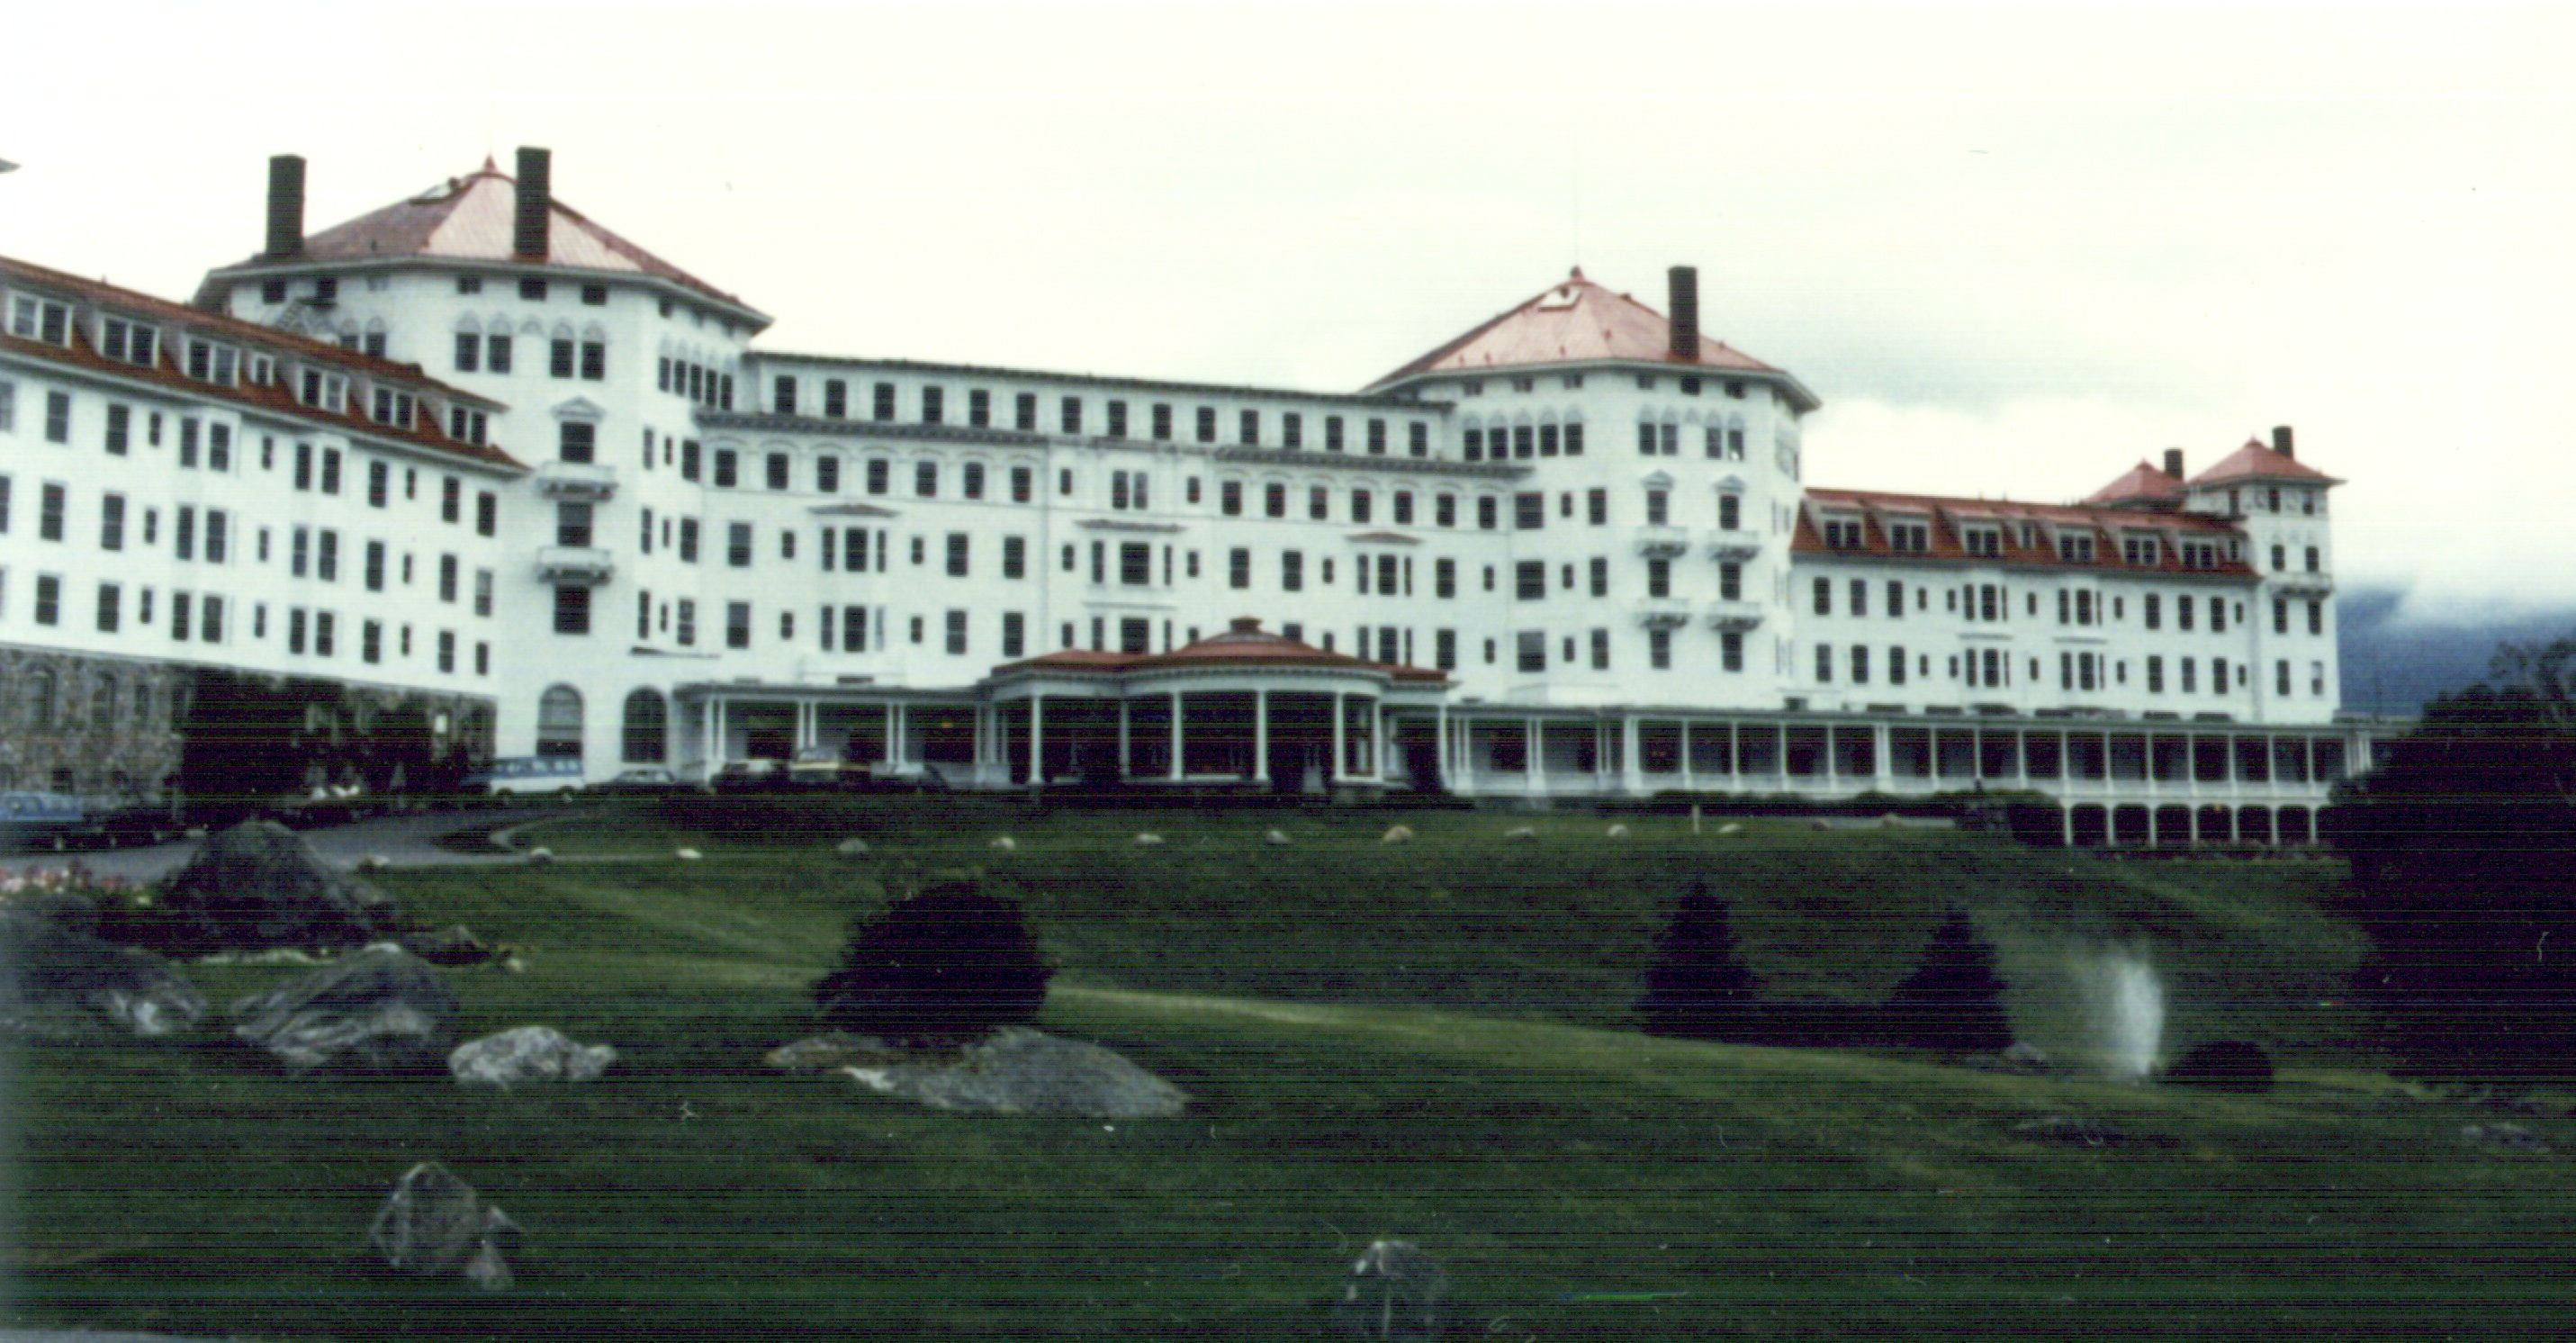 brettonwoods institution History and future of the bretton woods institutions during our conference it is  supposed that policymakers, investment bankers and academics will discuss the .